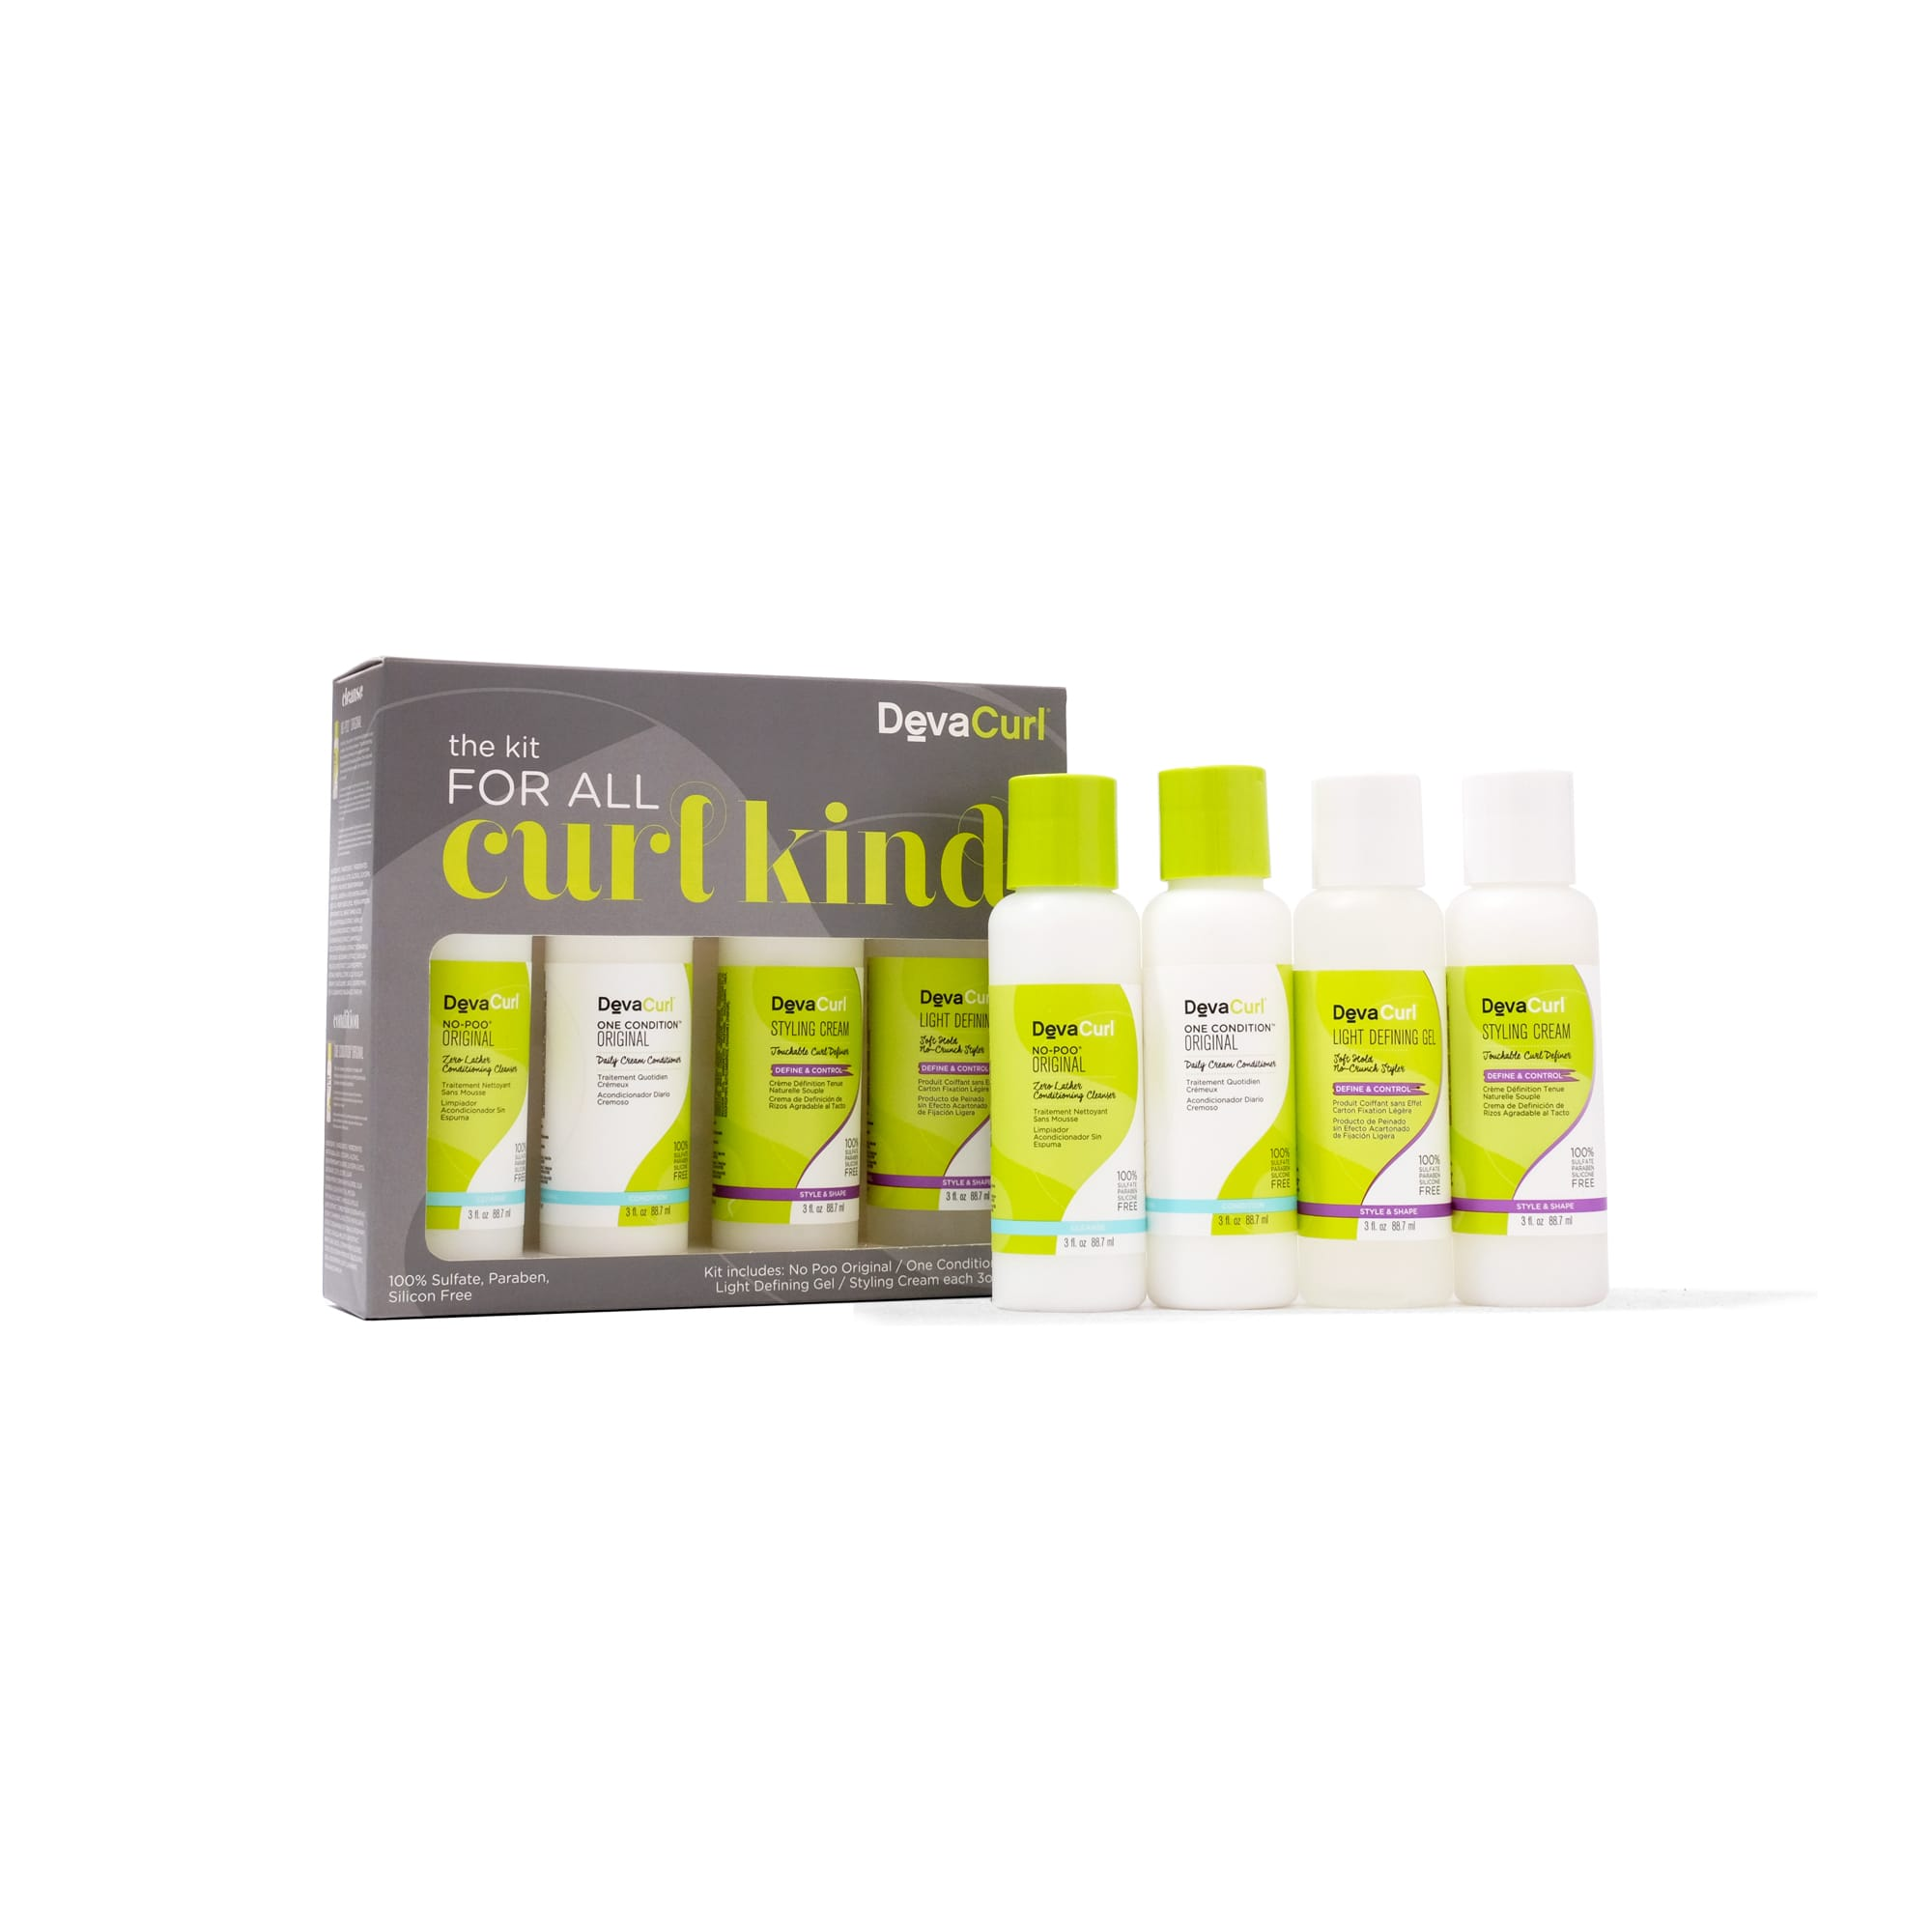 kit for all curl kind with 3oz bottles outside the box